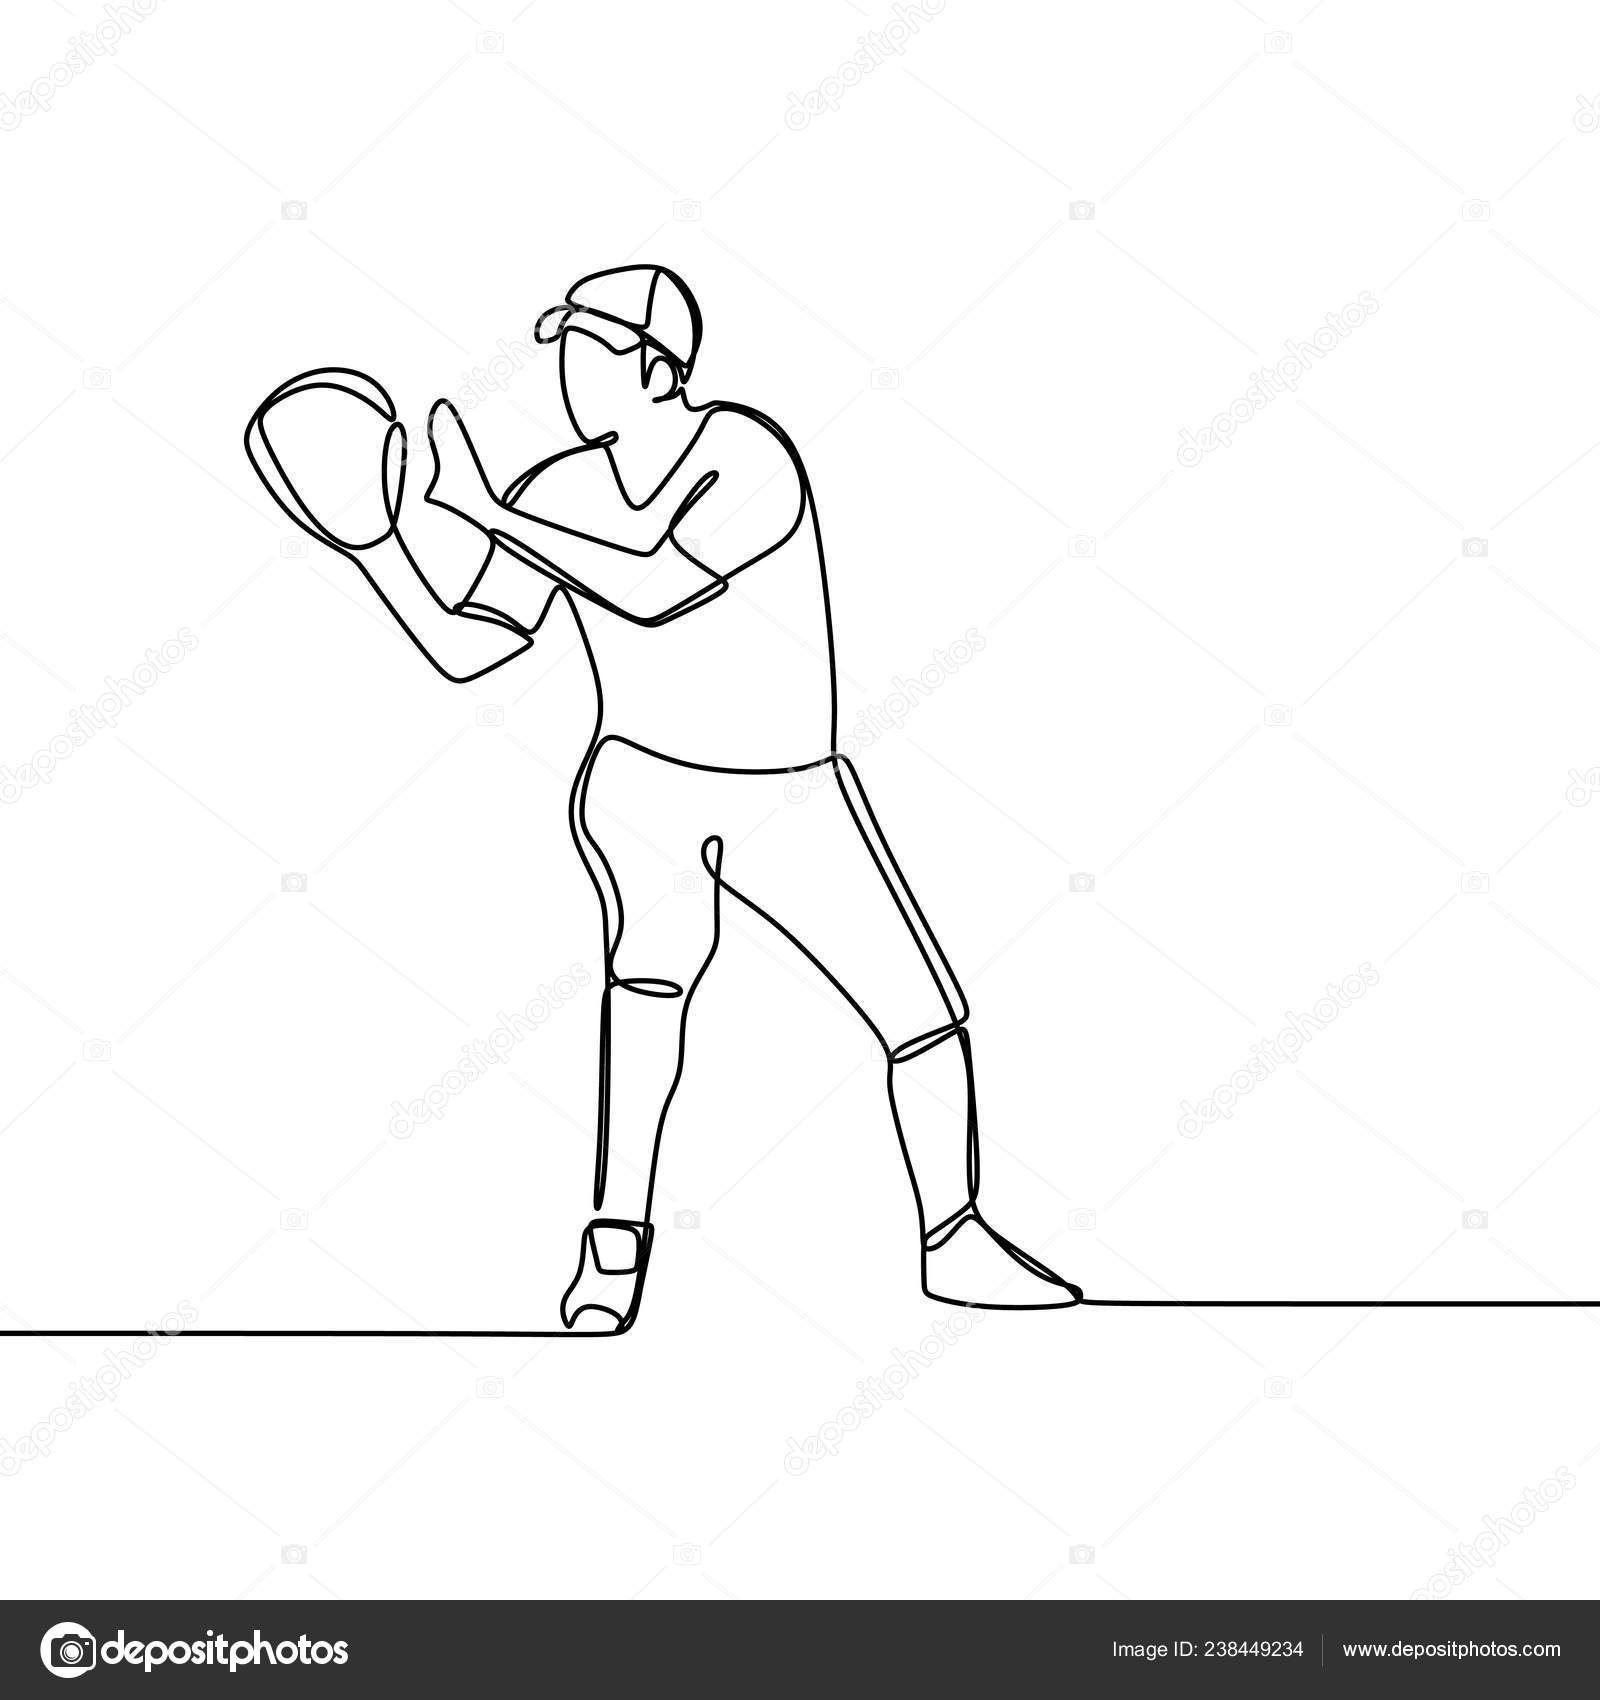 One Line Drawing Baseball Player Ready Catch Ball Vector